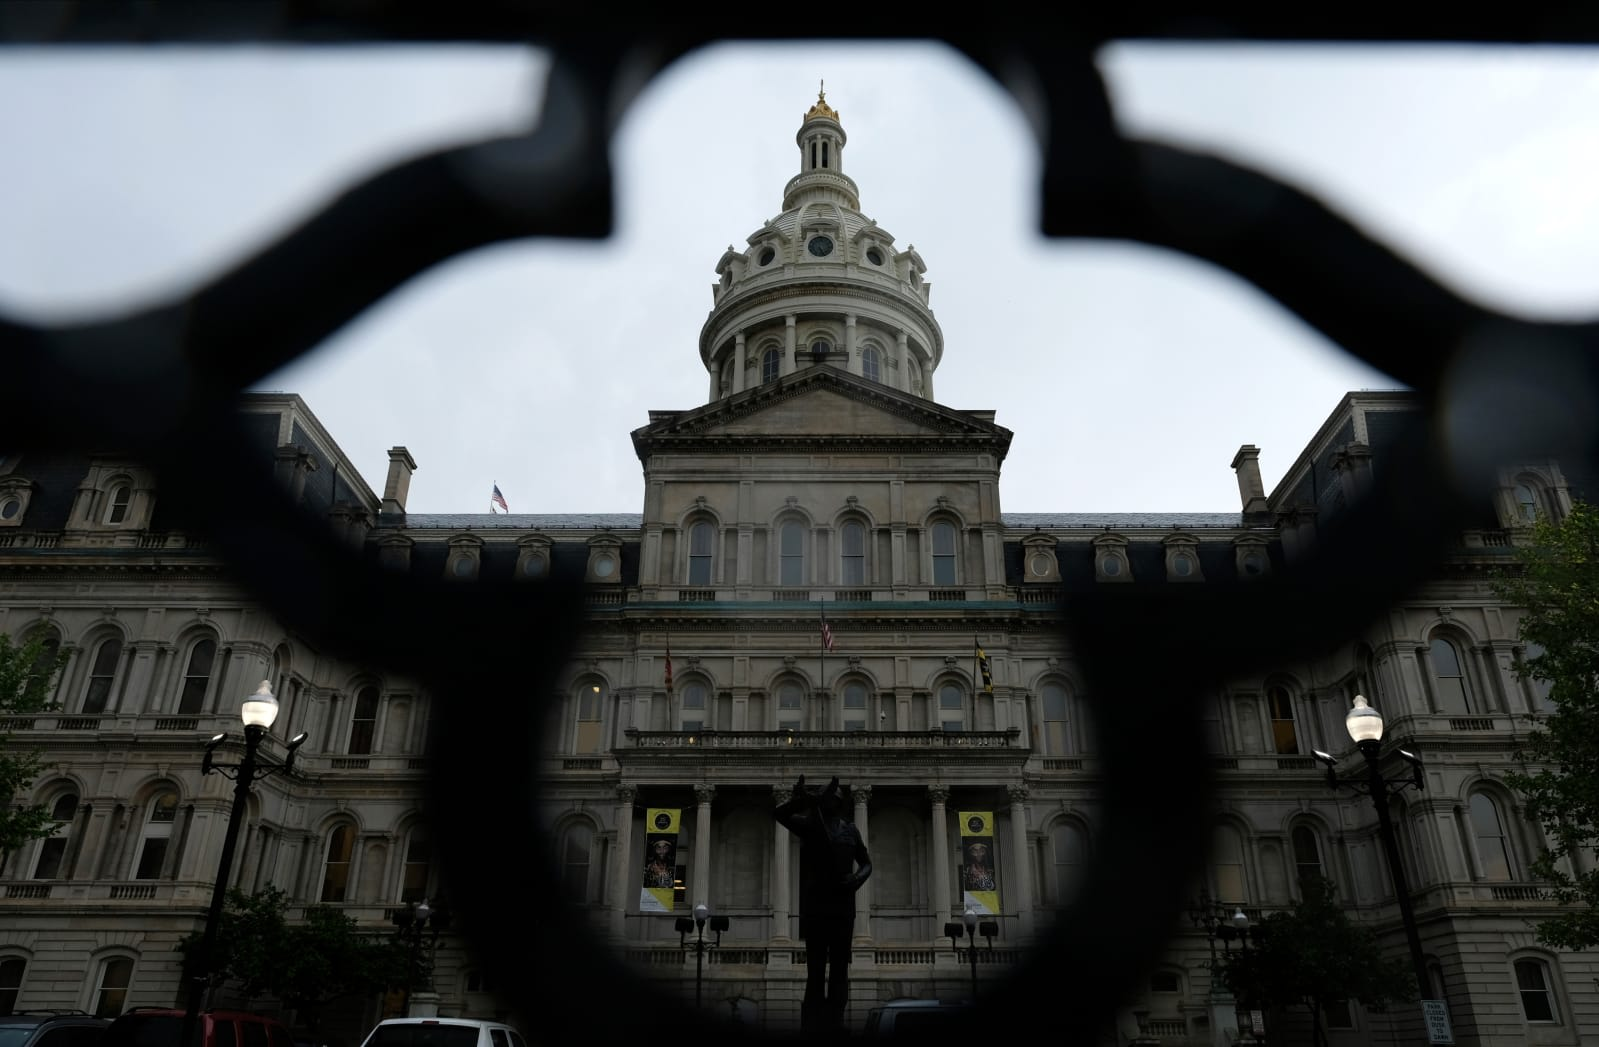 A ransomware attack is holding Baltimore's networks hostage